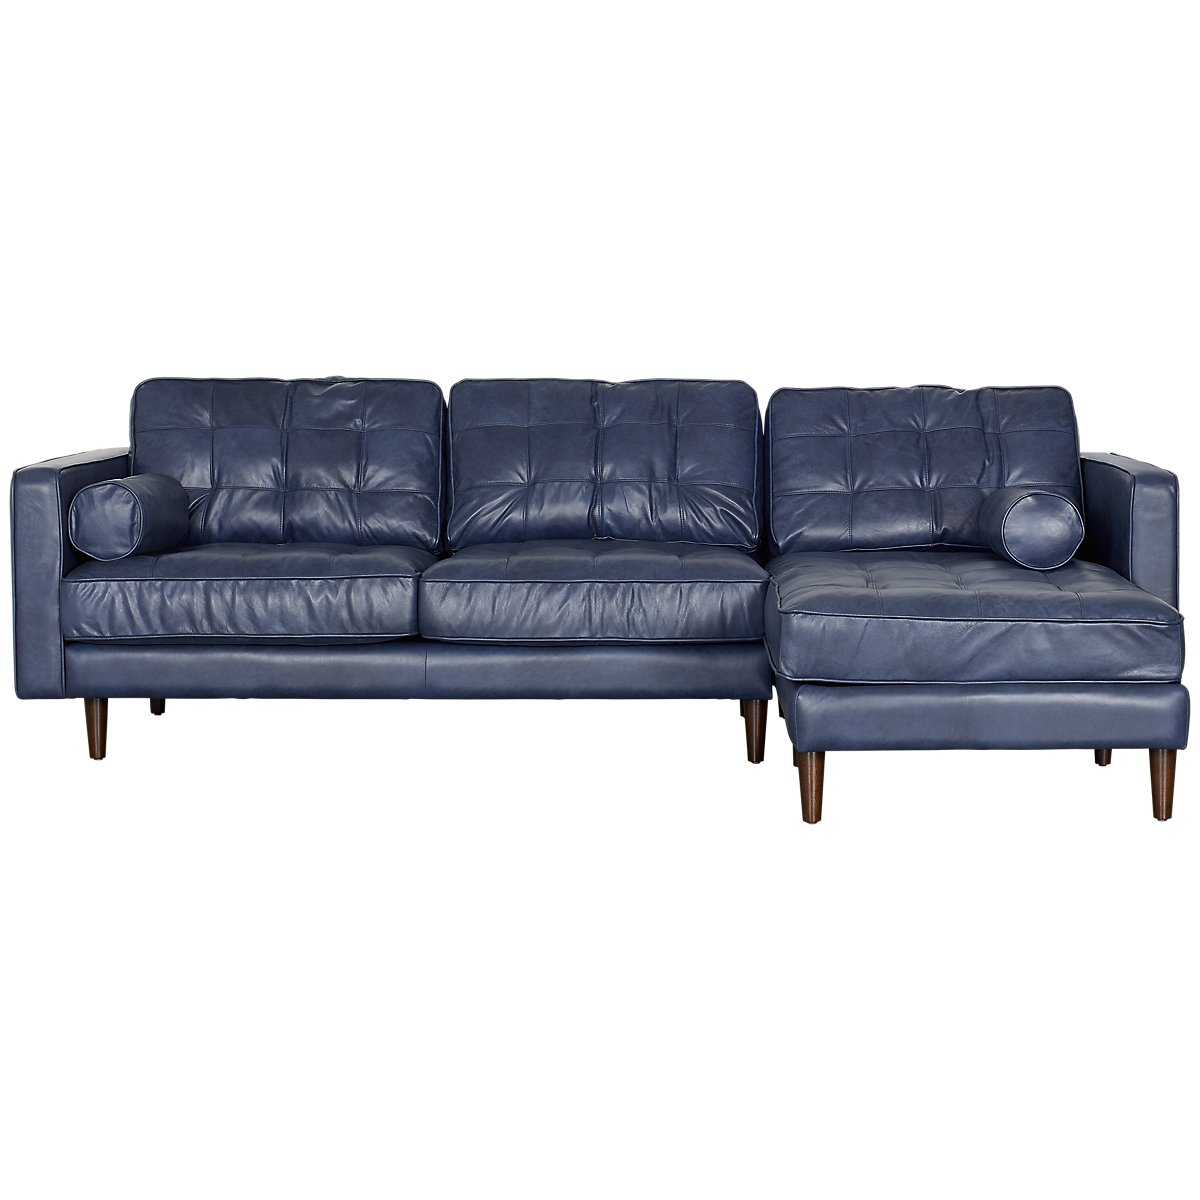 City Furniture: Encino Dark Blue Leather Right Chaise Sectional